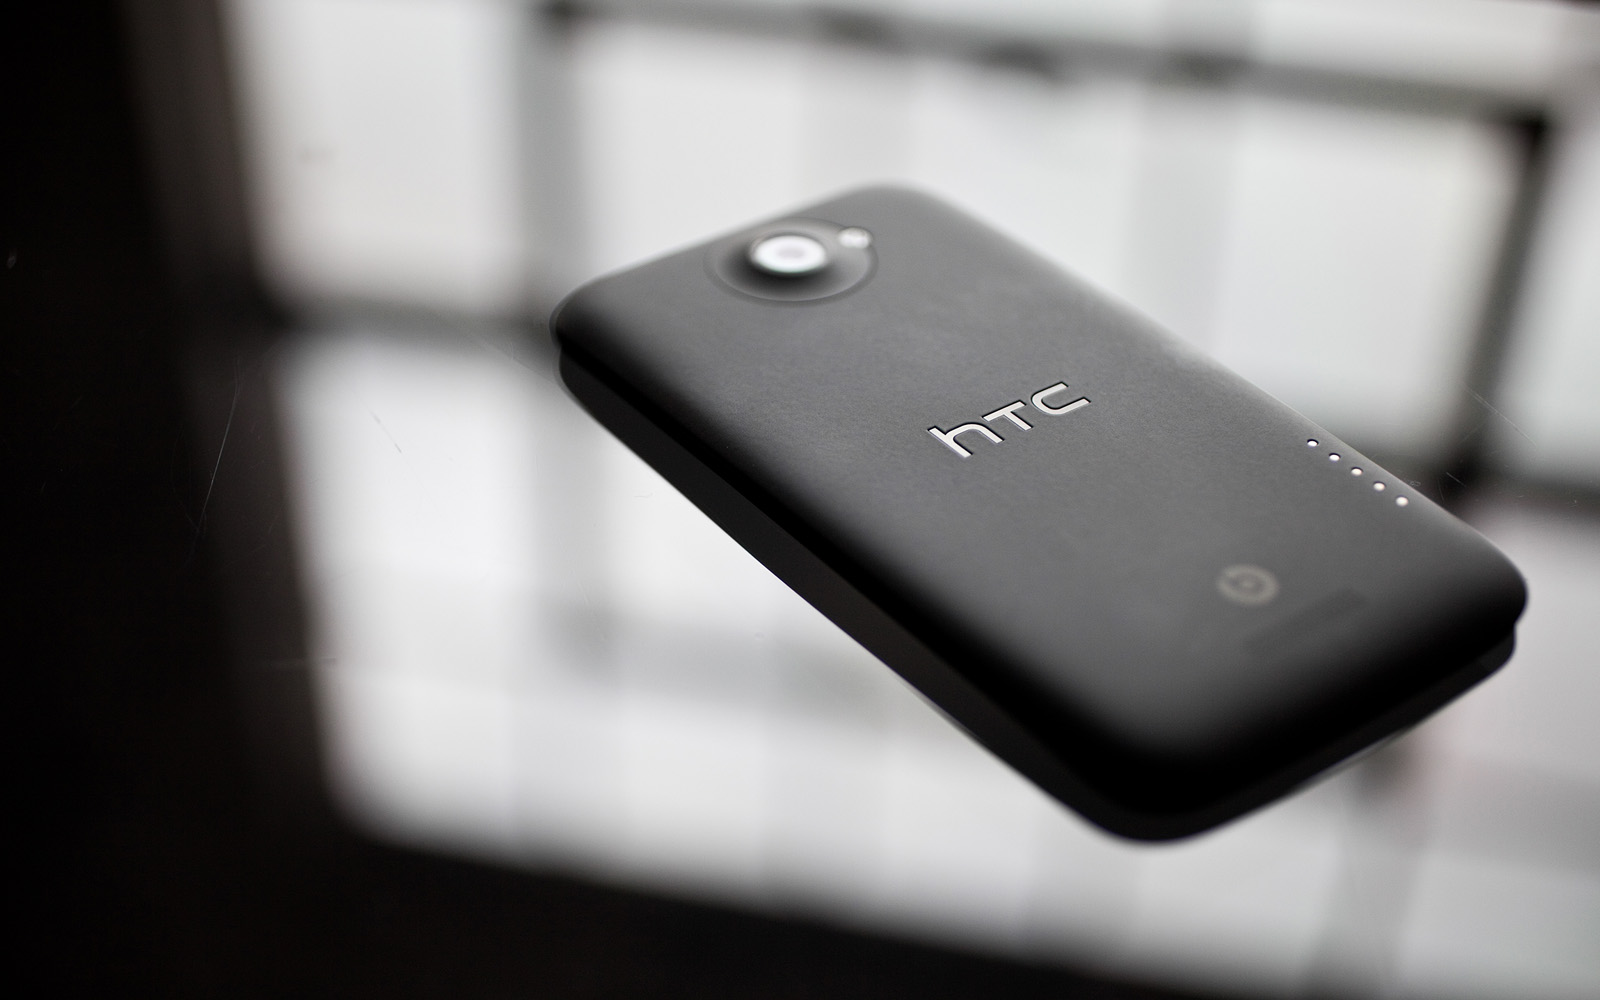 htc m7 wallpaper free download wallpaper dawallpaperz